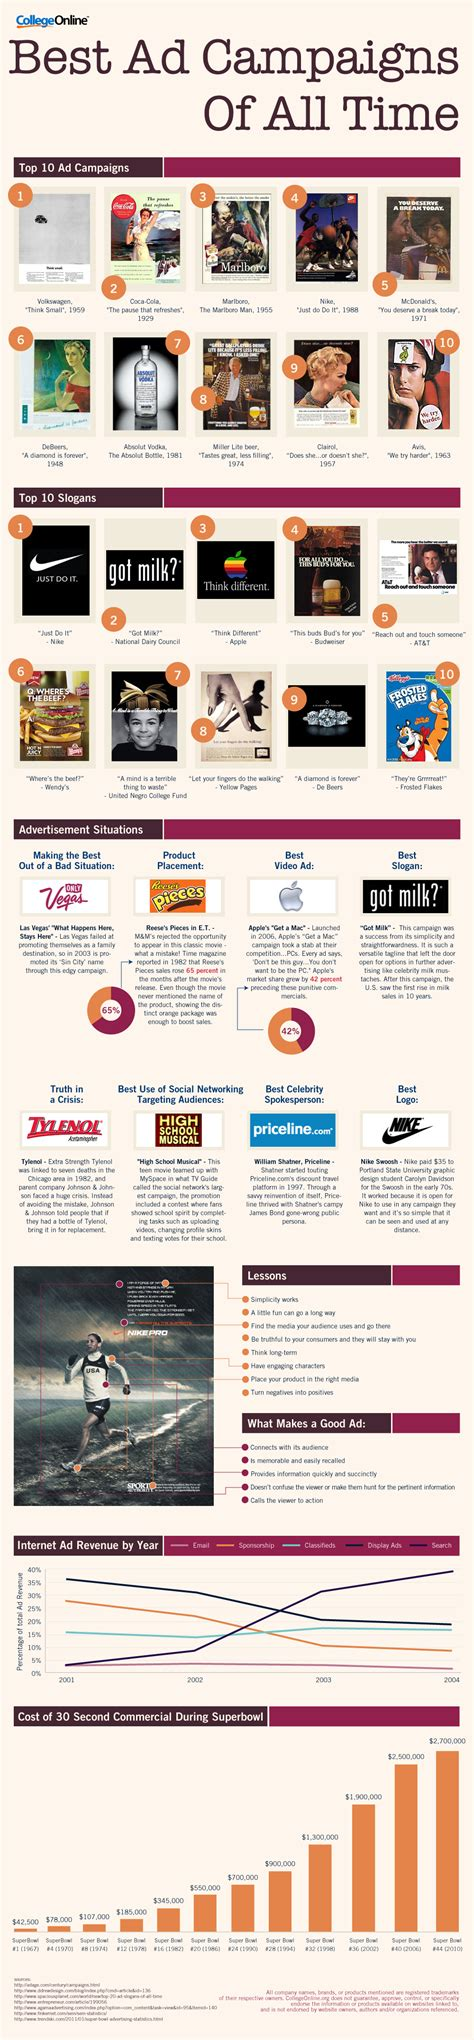 Best Advertising Campaigns. Imperial Premium Finance Joomla Cloud Hosting. Criminal Justice Online Colleges. Health Insurance Quotes Utah Wen Xue Cheng. Obstacle Courses Near Me Website Domain Hosts. Laser Eye Institute Reviews Data Domain 860. United Kingdom Credit Cards Toyota In Irving. Bank Of America Merchant Accounts. Strawberry Gallbladder Ultrasound